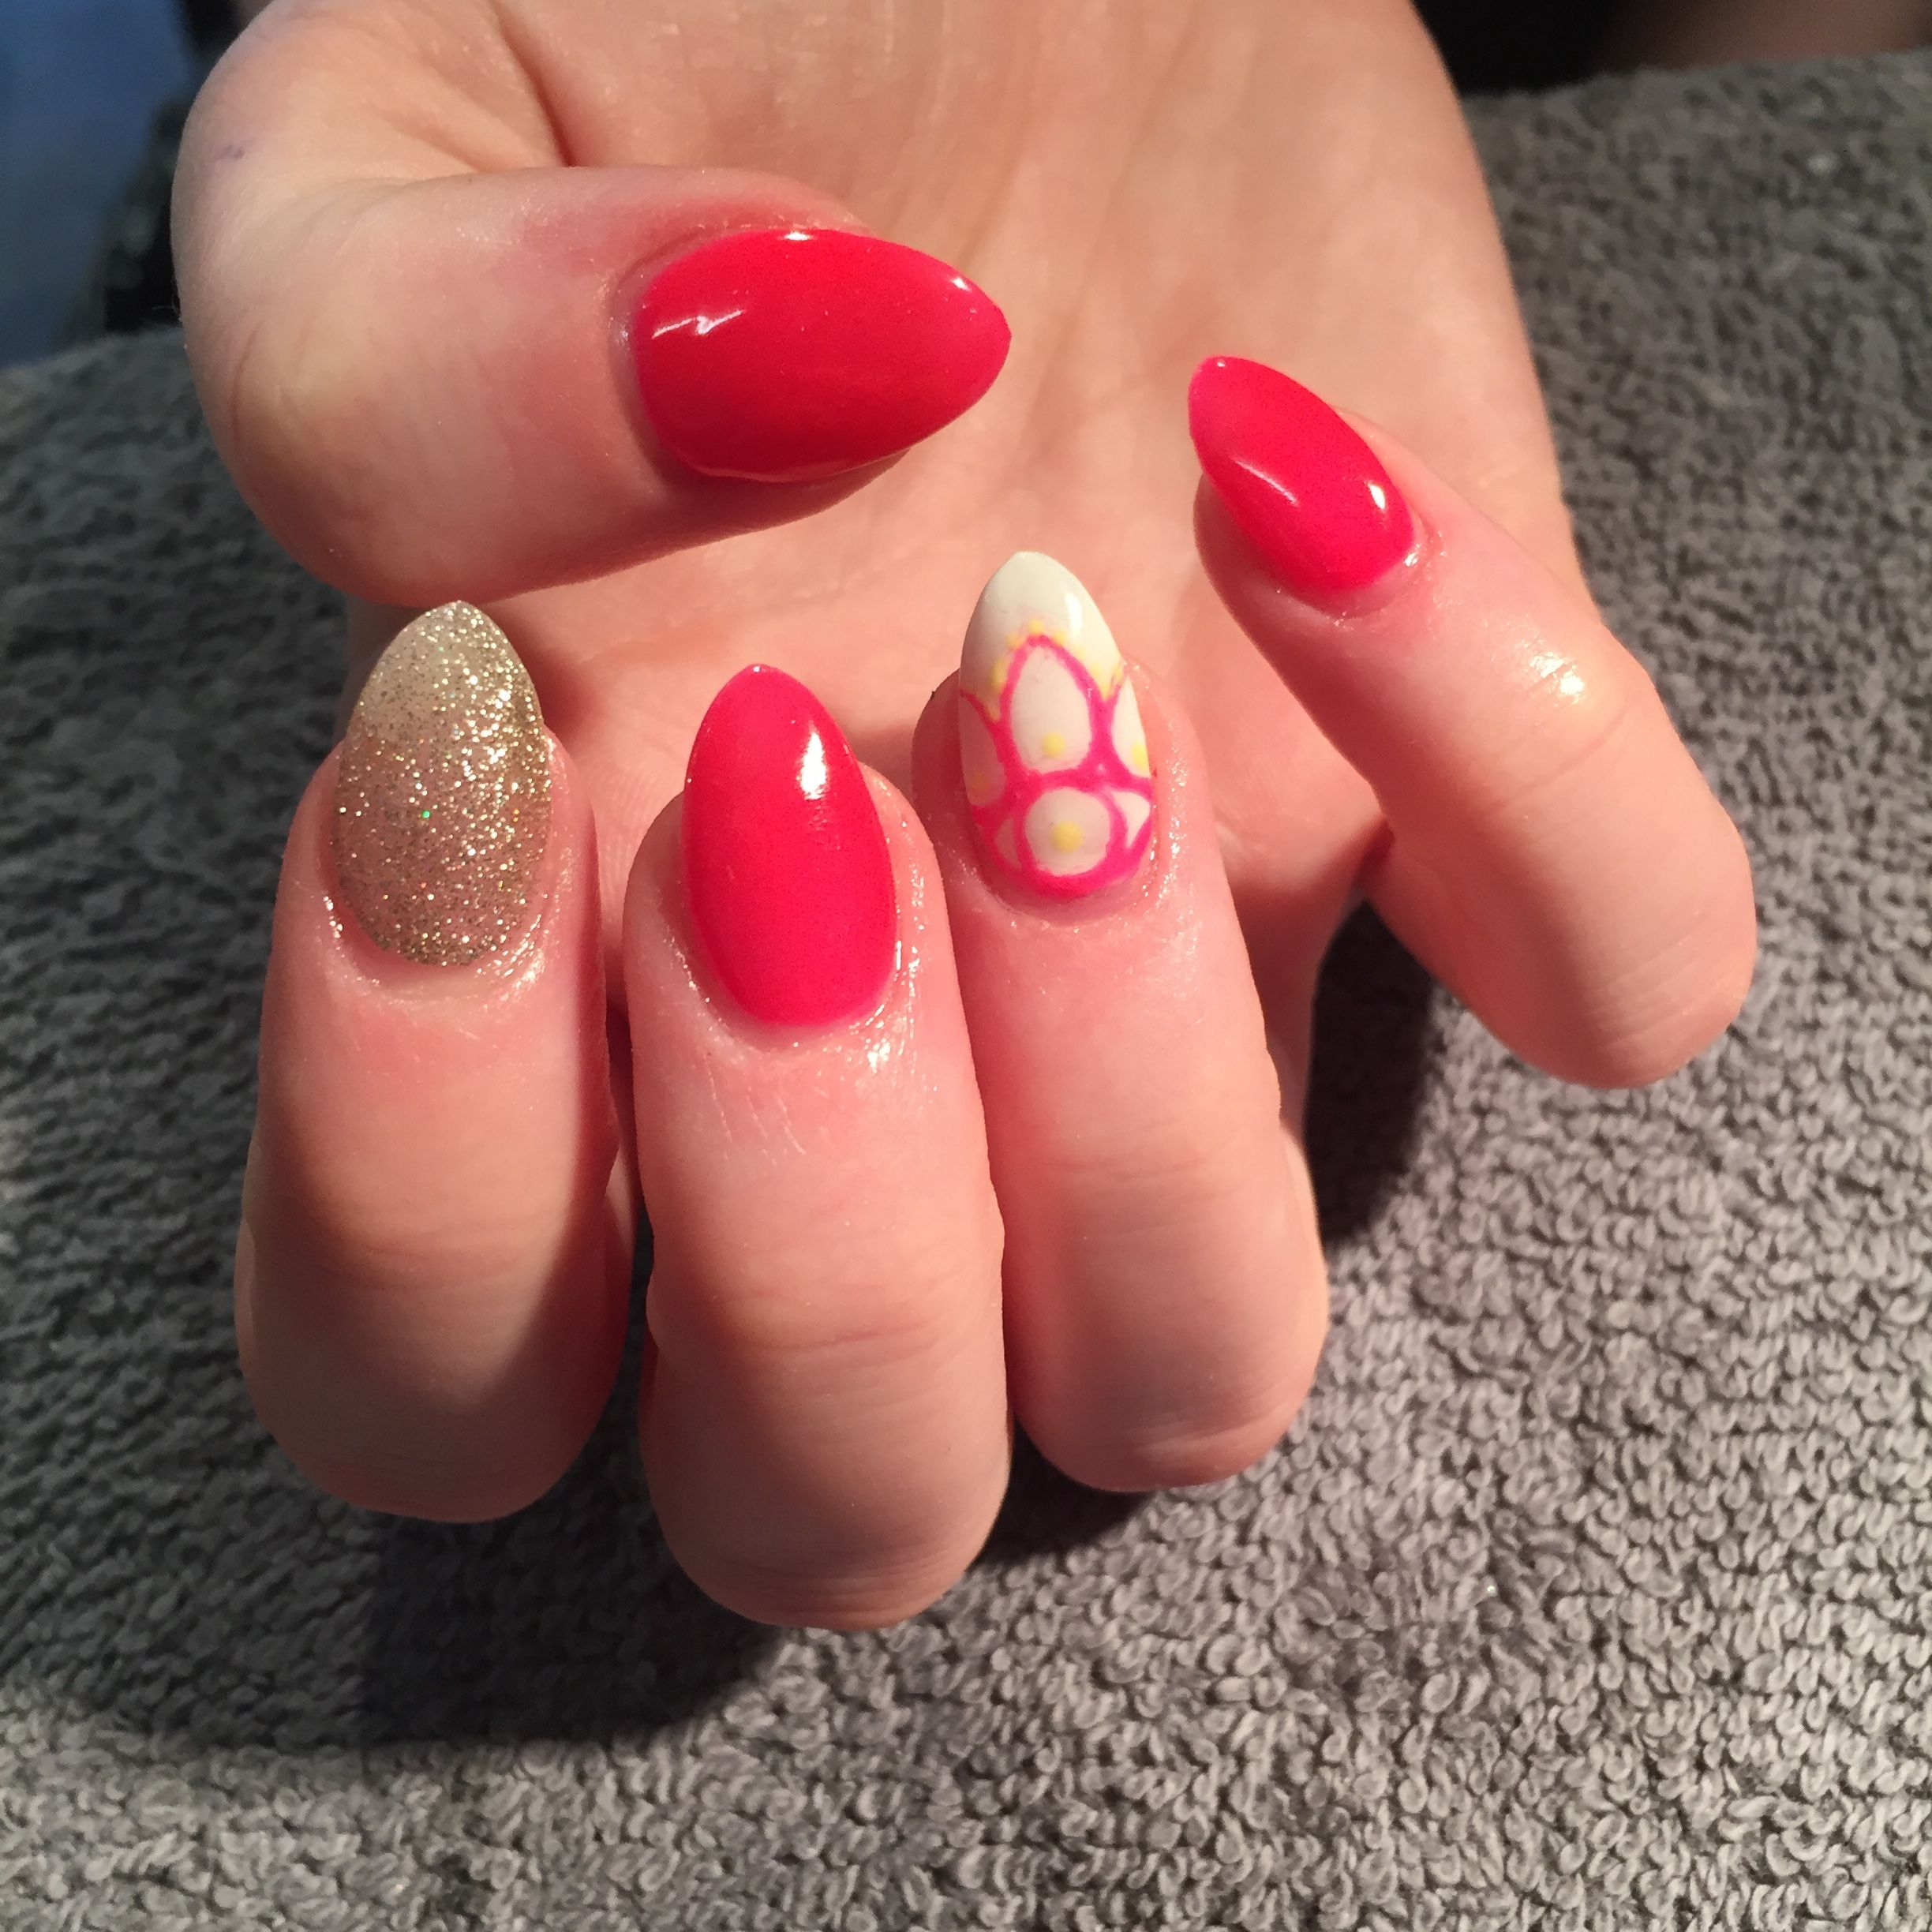 Neon pink nails with gold glitter and henna designs | My clients ...